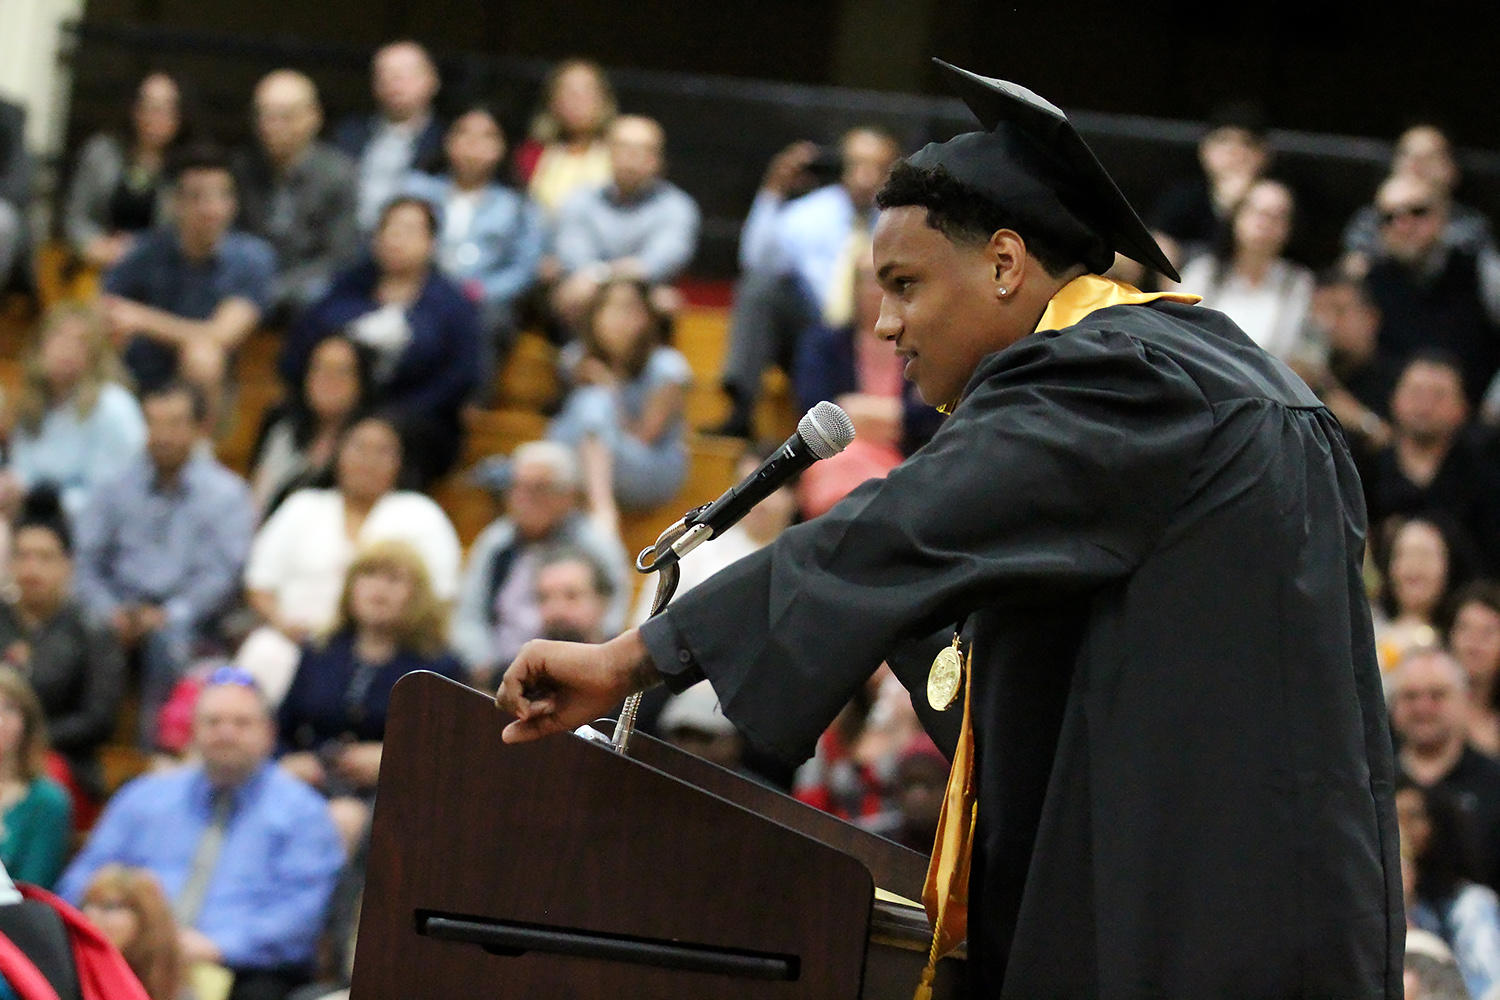 The 2019 EPHS valedictorian delivers a speech at the school's graduation ceremony in May.